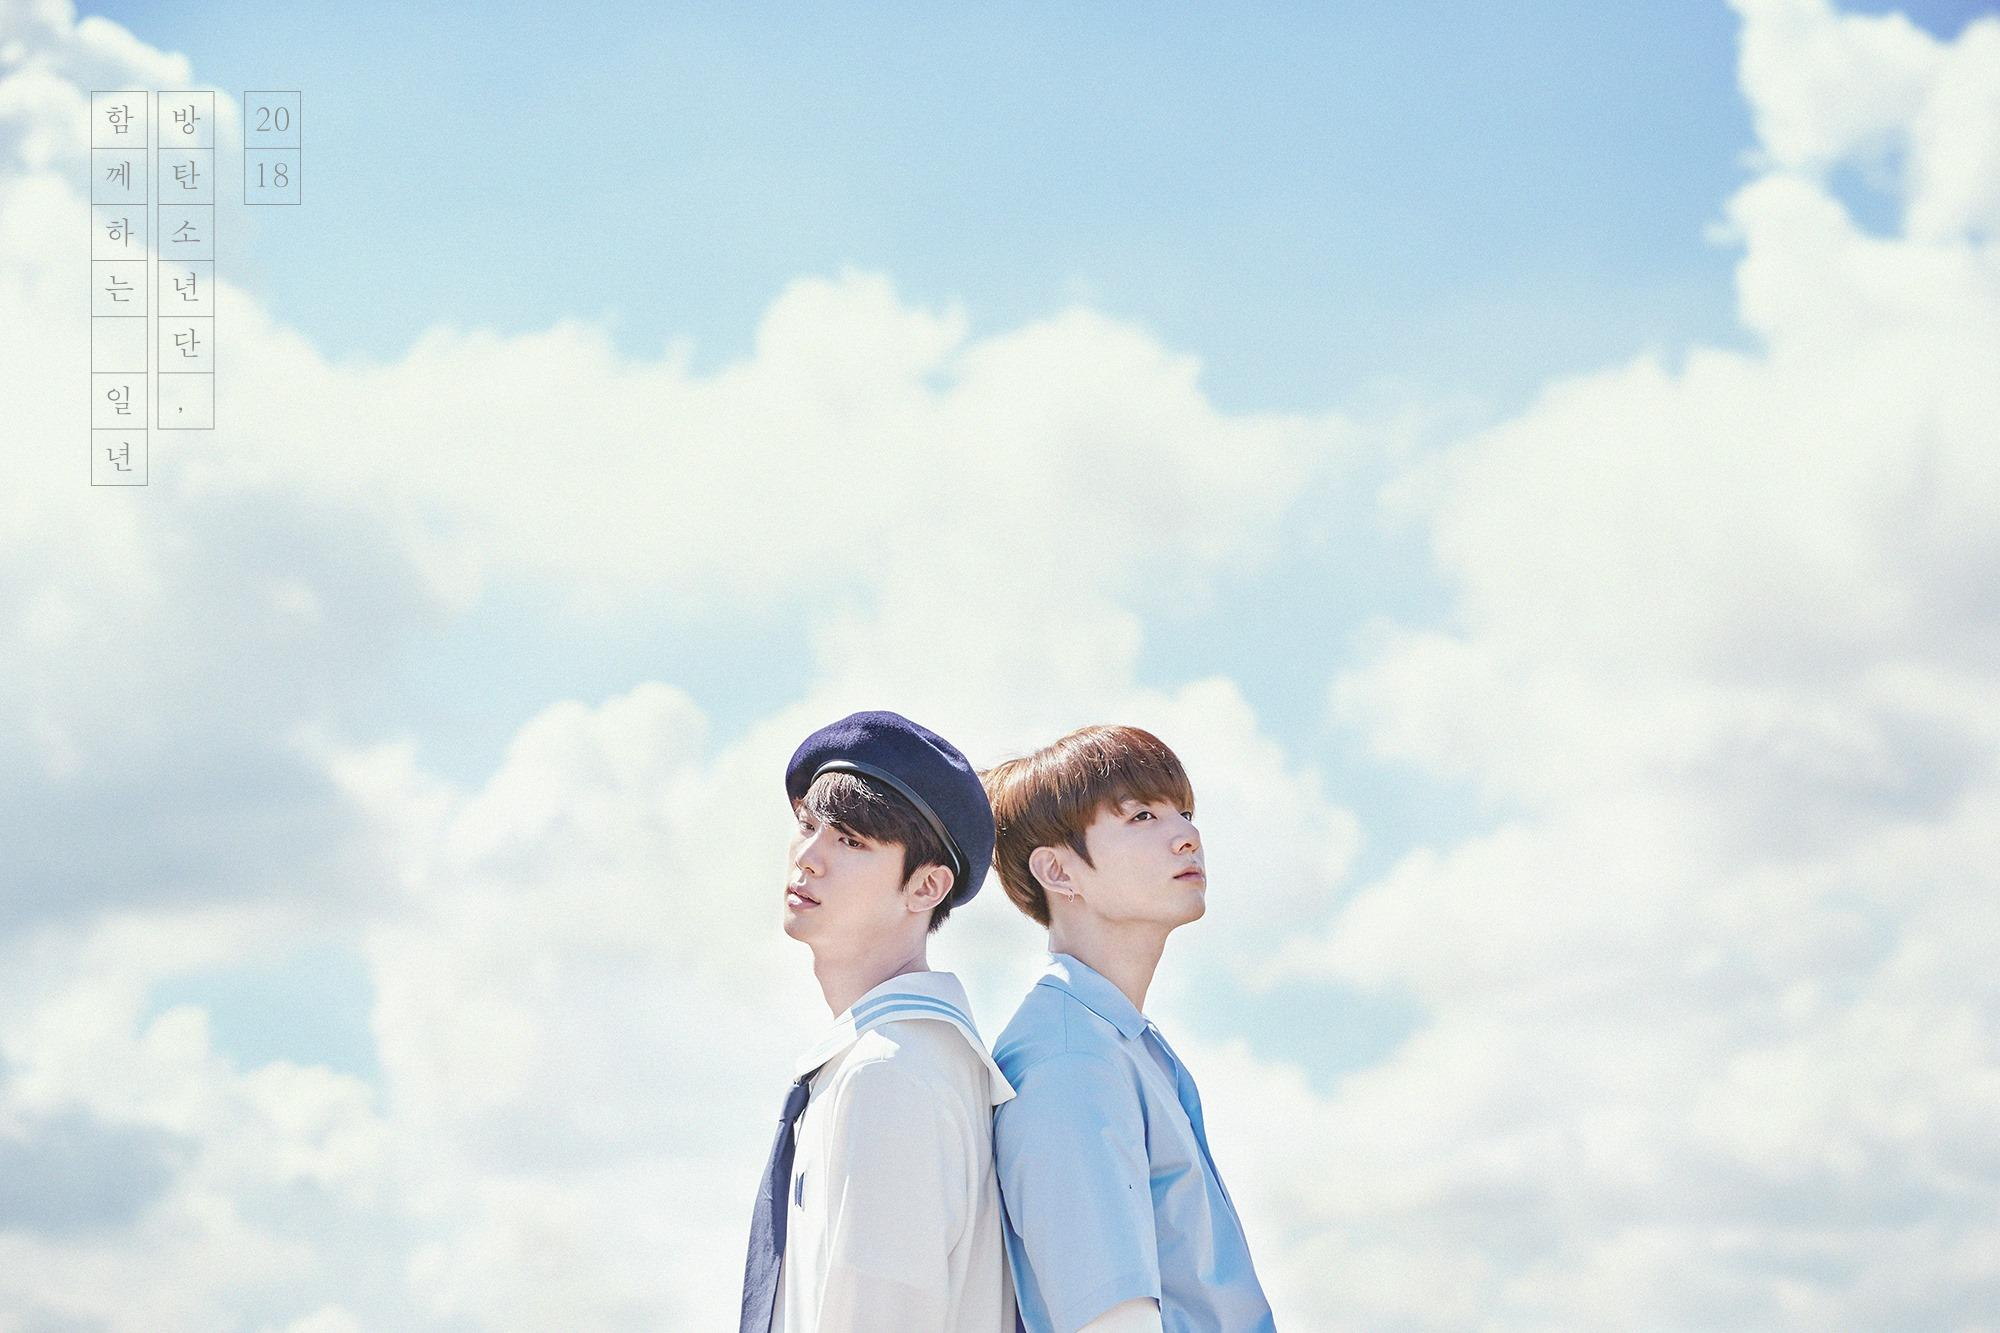 All Picture Bts teaser photos 2018